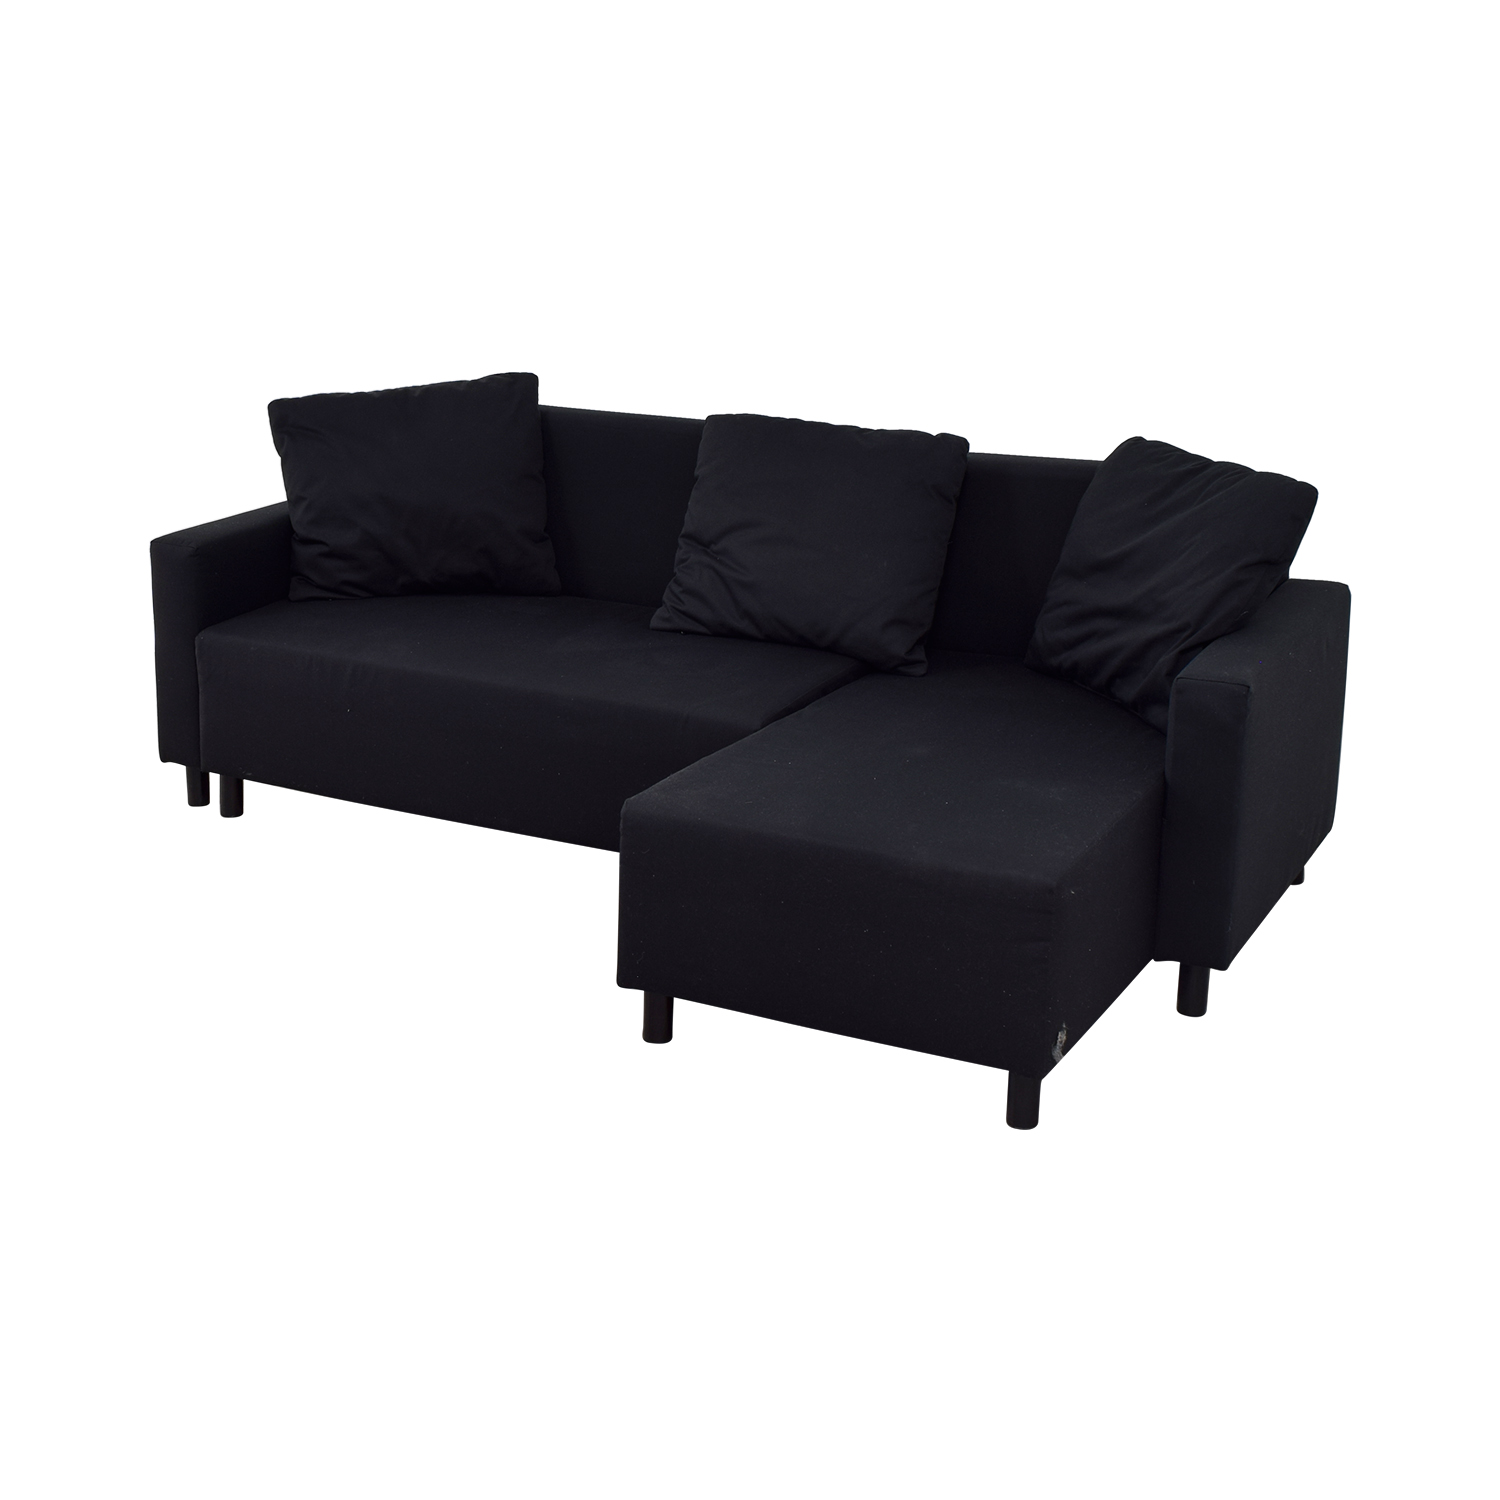 31 off ikea ikea black sleeper chaise sectional with storage sofas